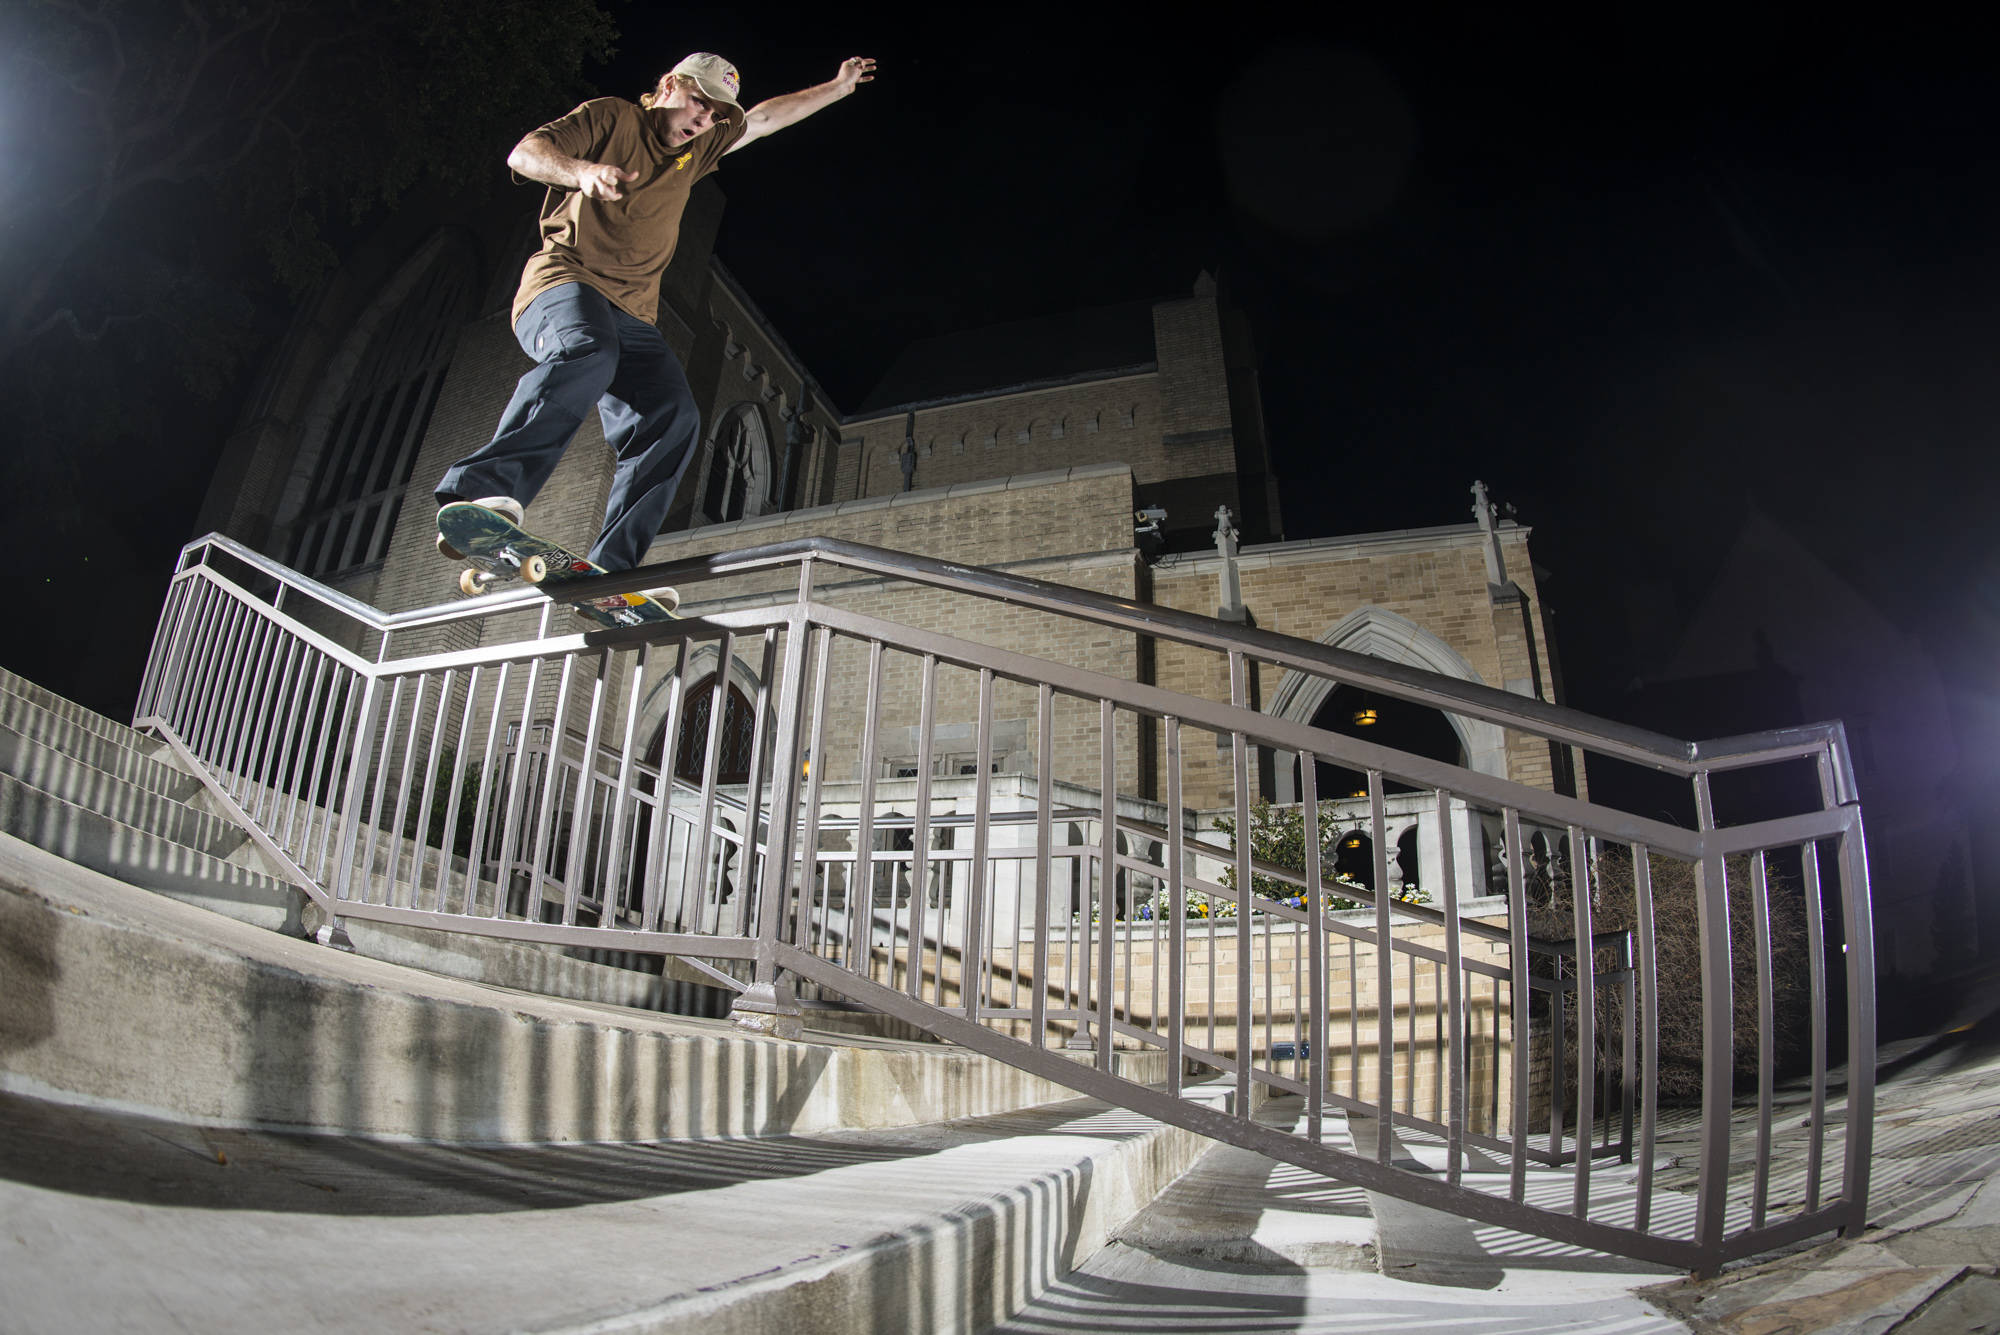 RED BULL DROP IN TOUR PHOTO GALLERY FROM DALLAS